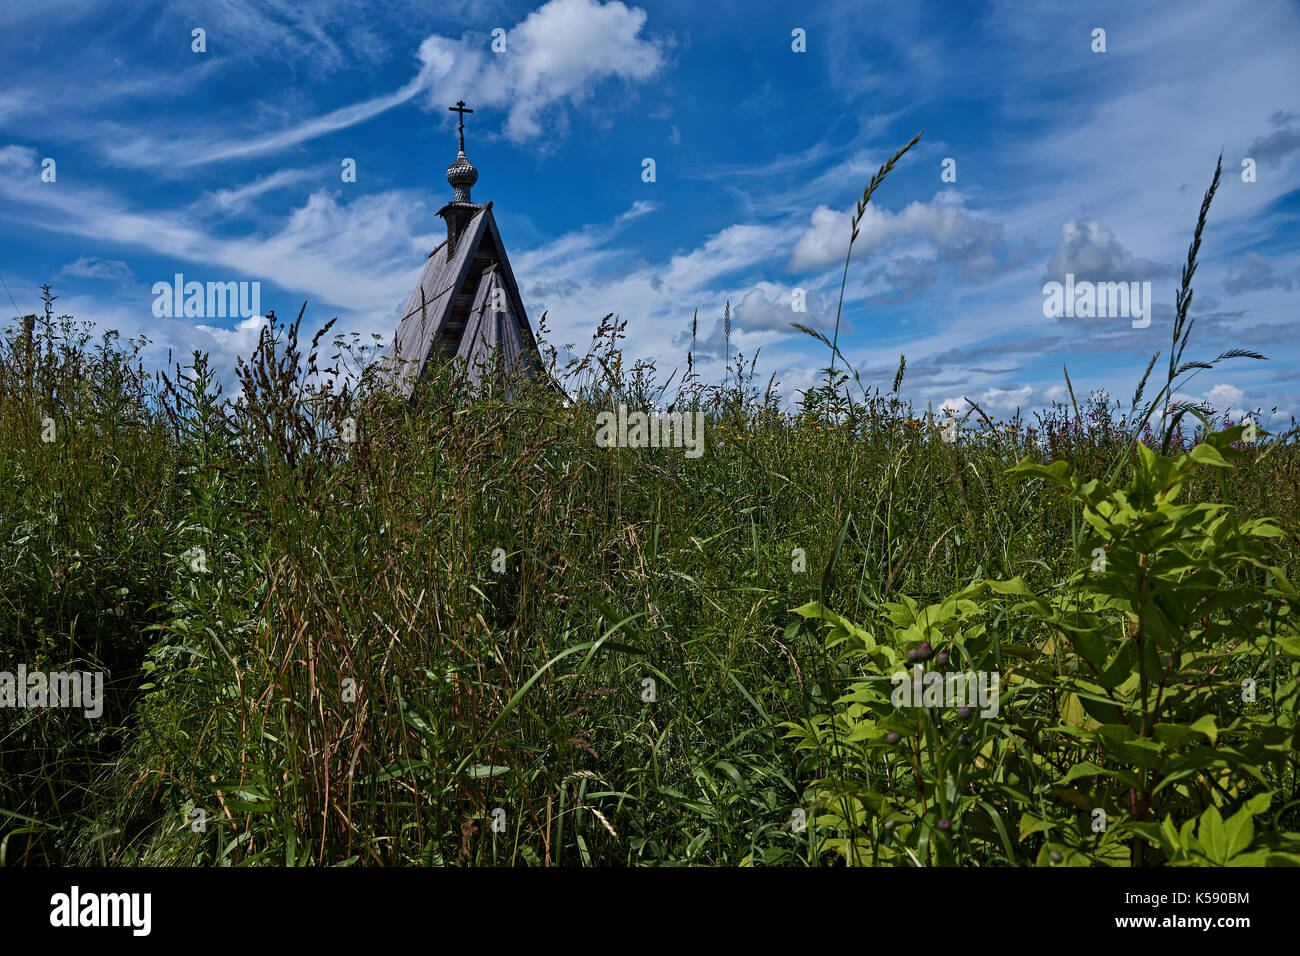 A wooden Orthodox church stands on a hill. Near the church there is an ancient rural cemetery with wooden crosses. Plyos, the Golden ring of Russia - Stock Image